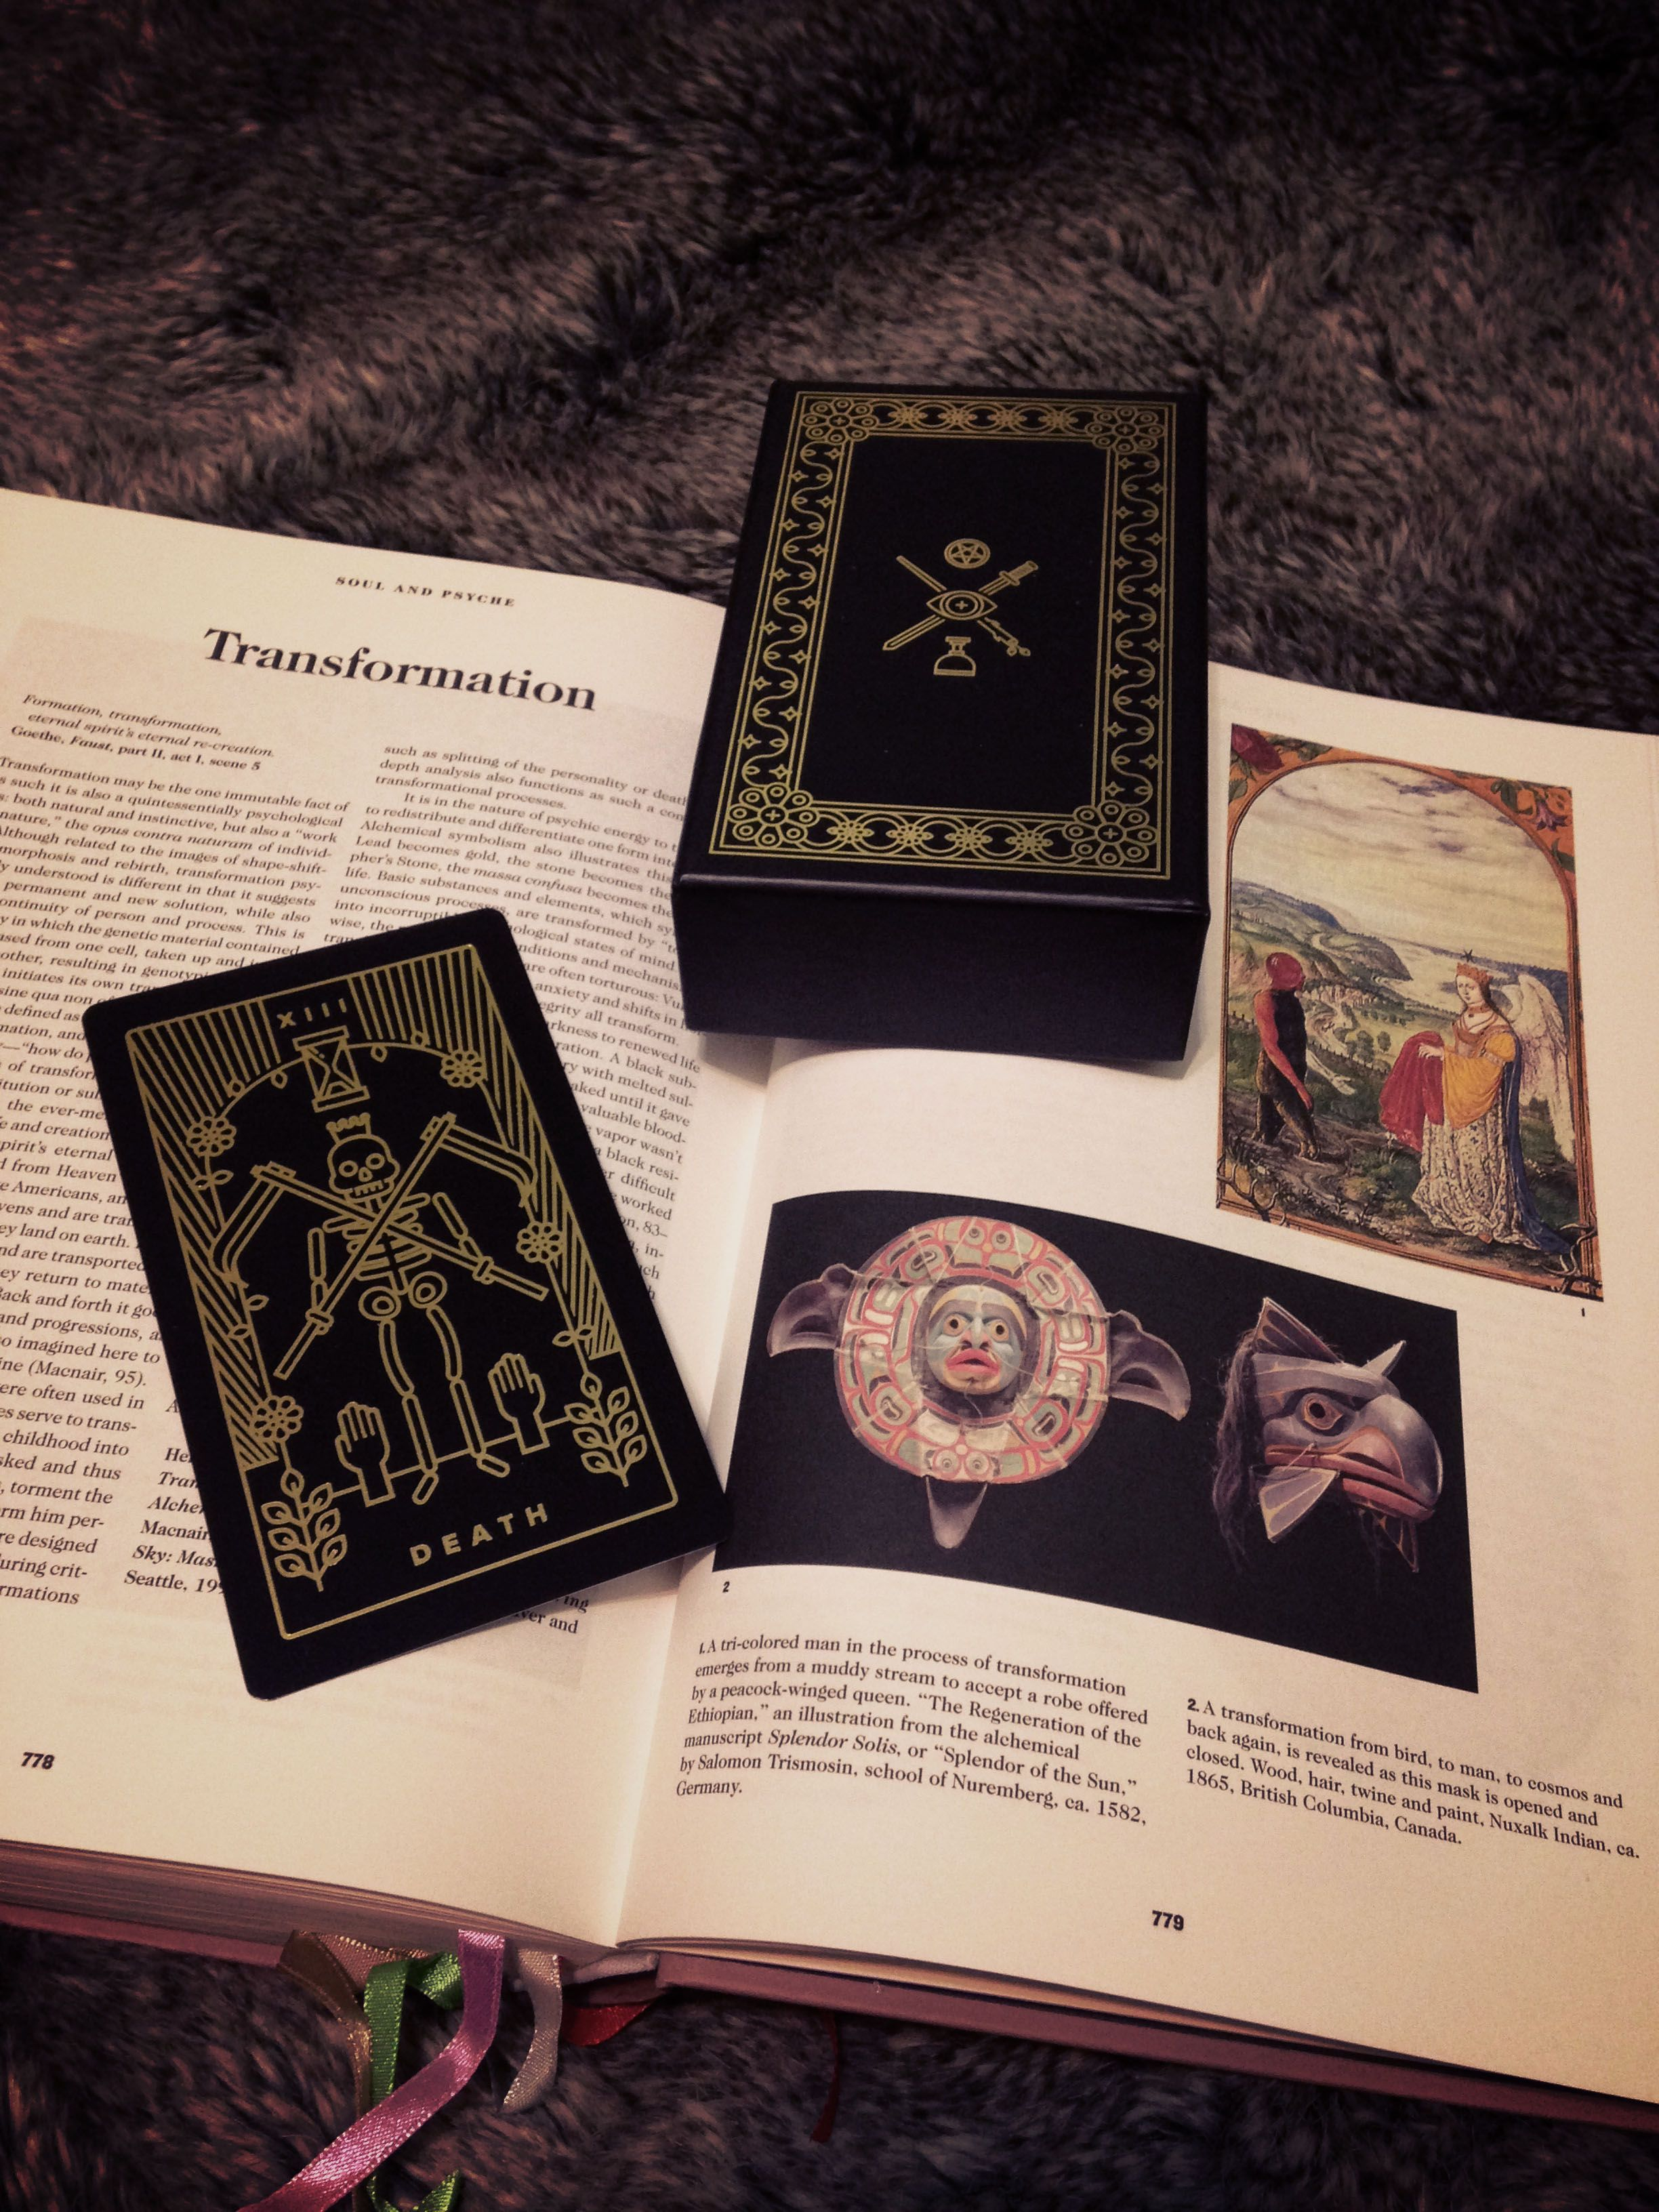 A beautiful reference book on #symbols throughout humanity, lavishly printed with illustrations throughout, and wonderfully designed. #taschen is just a great publisher when it comes to these things. There are several sections - Creation & Cosmos, Plant World, Animal World, Human World and Spirit World. And of course, there's so many symbols here that have been used in the tarot.